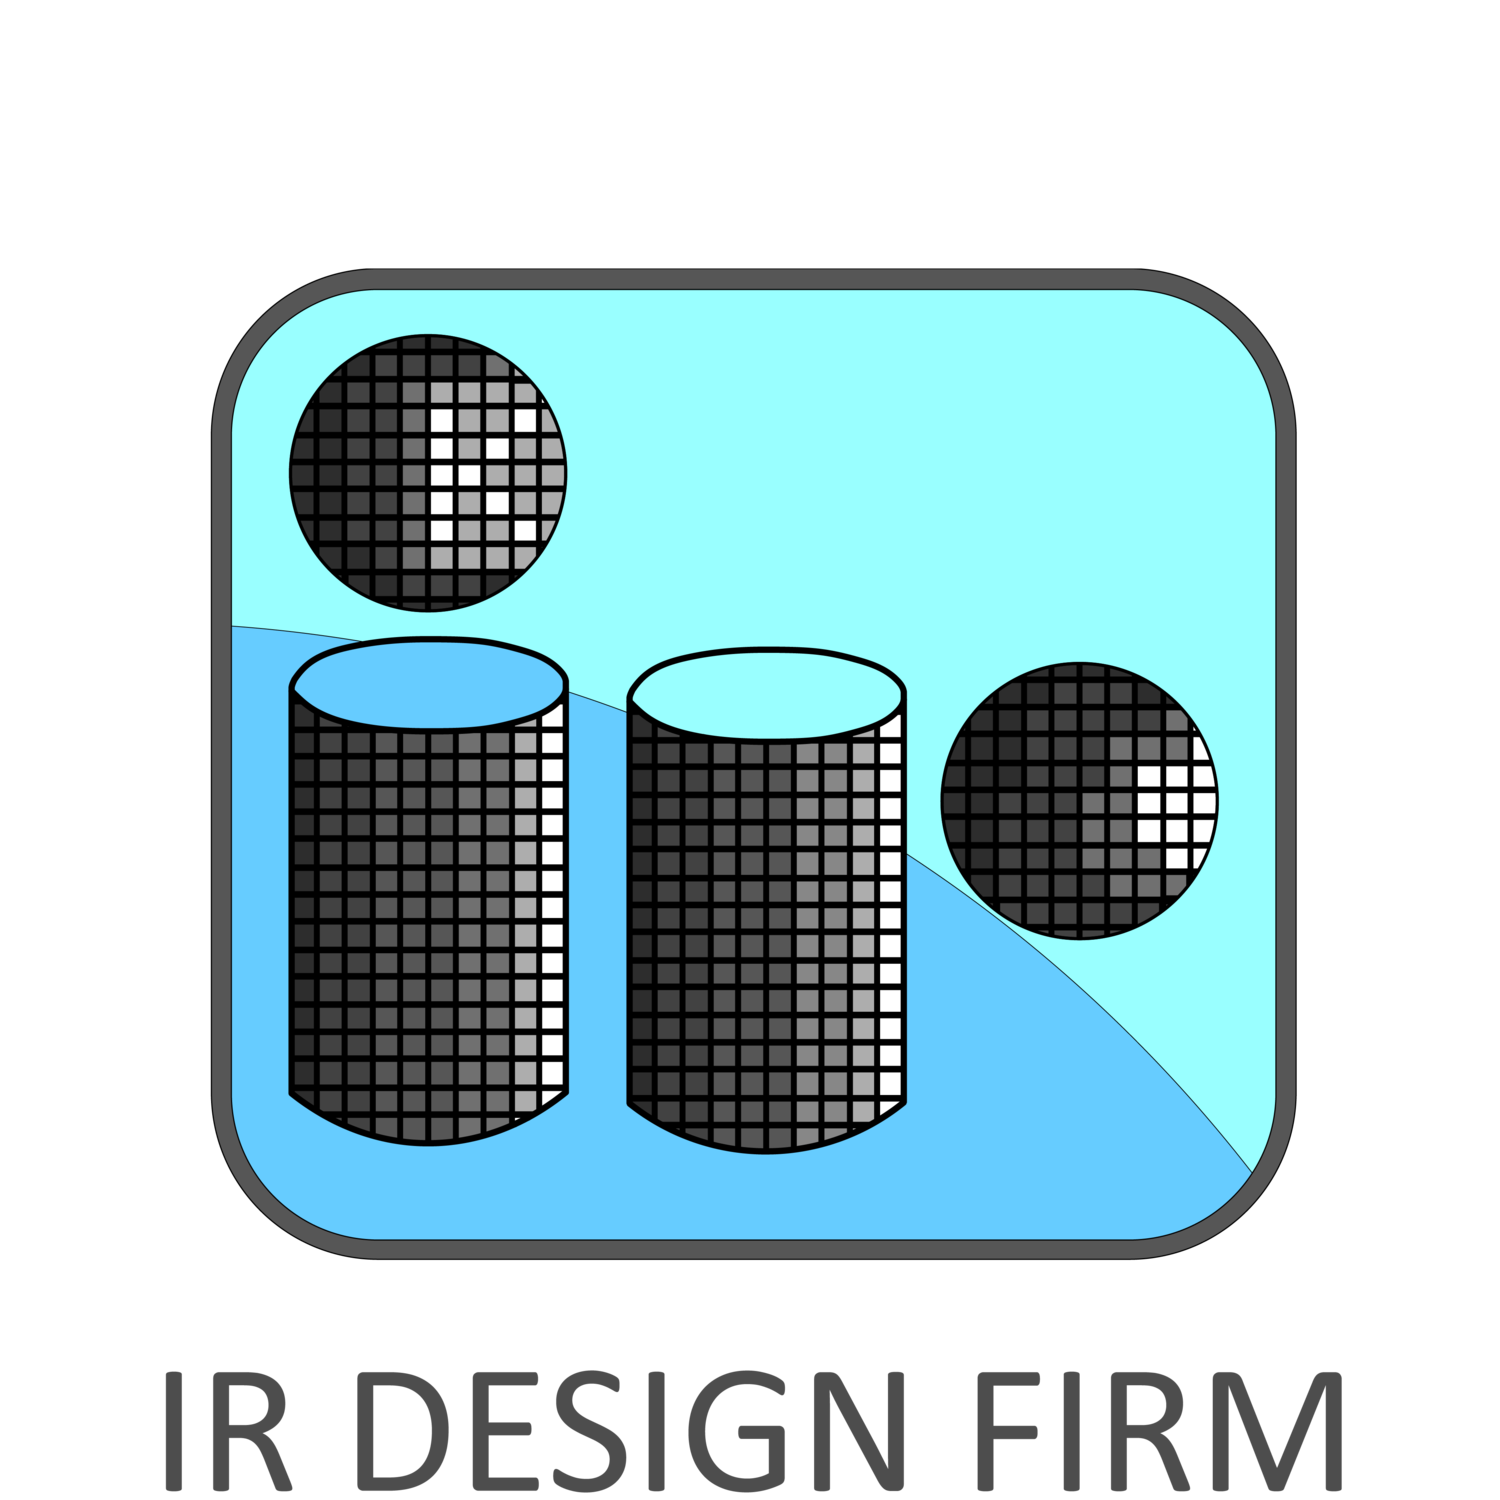 IR DESIGN FIRM, INC.